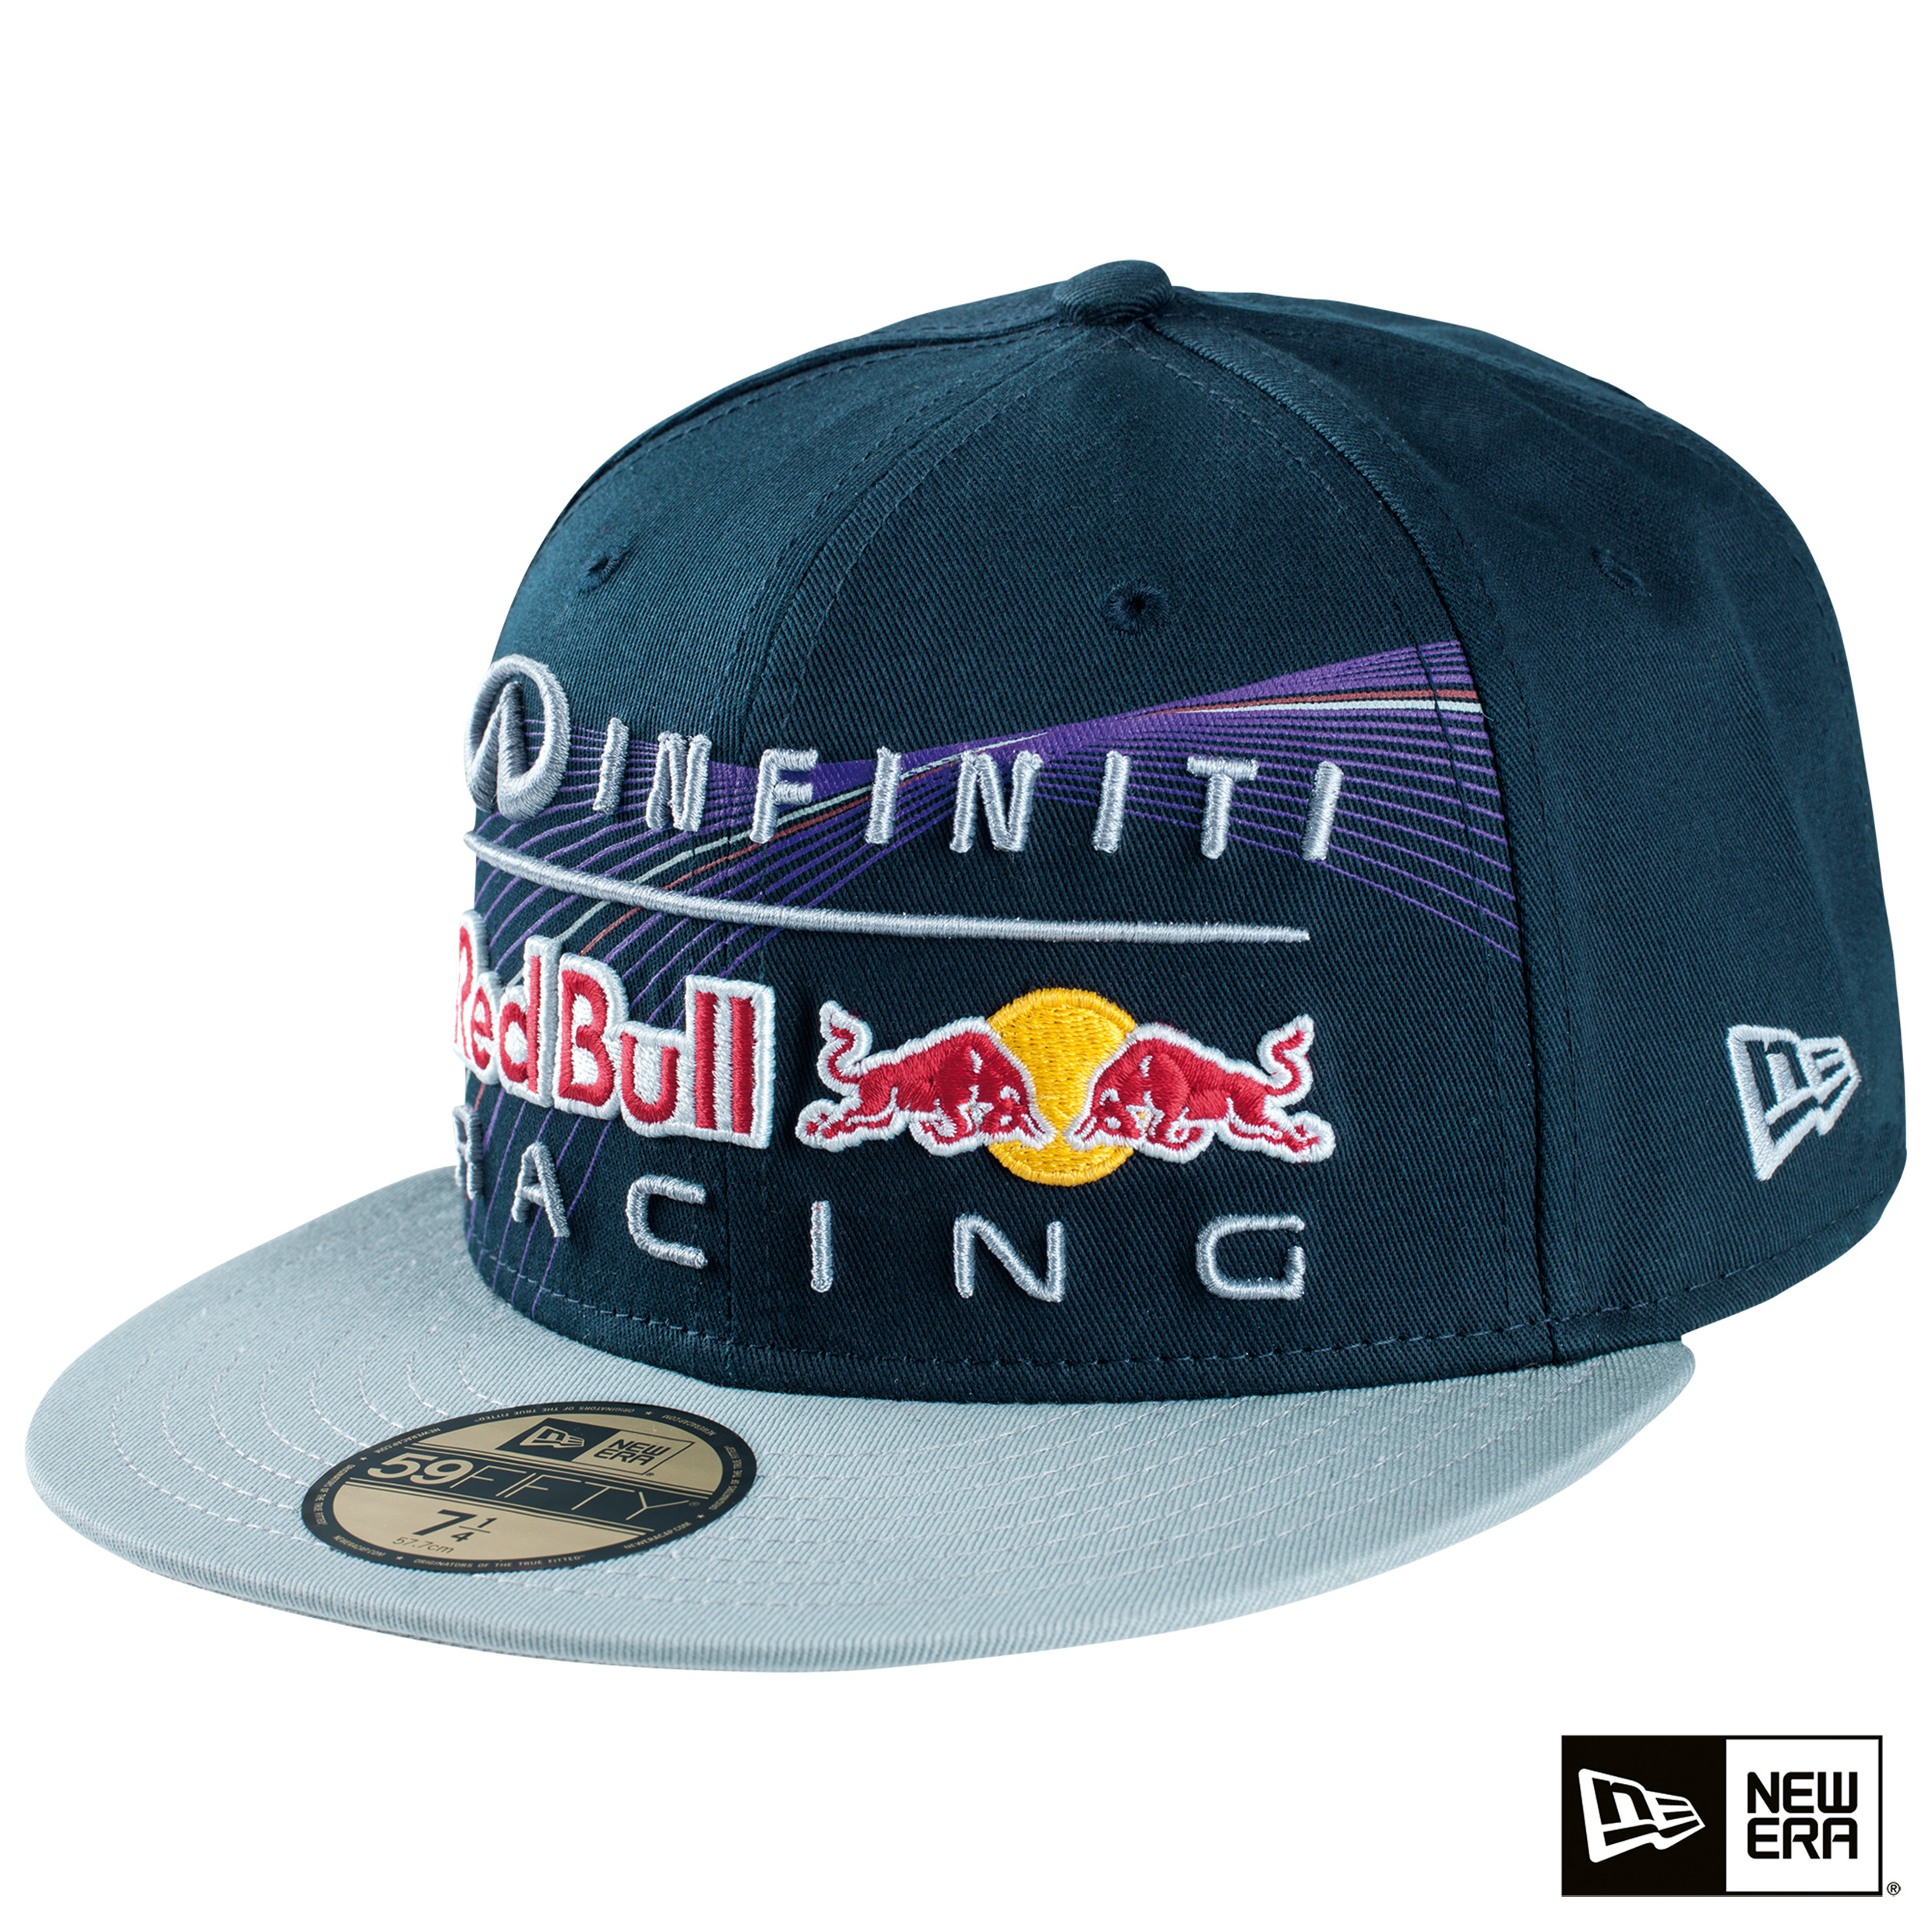 Infiniti Red Bull Racing New Era 59FIFTY Fitted Cap